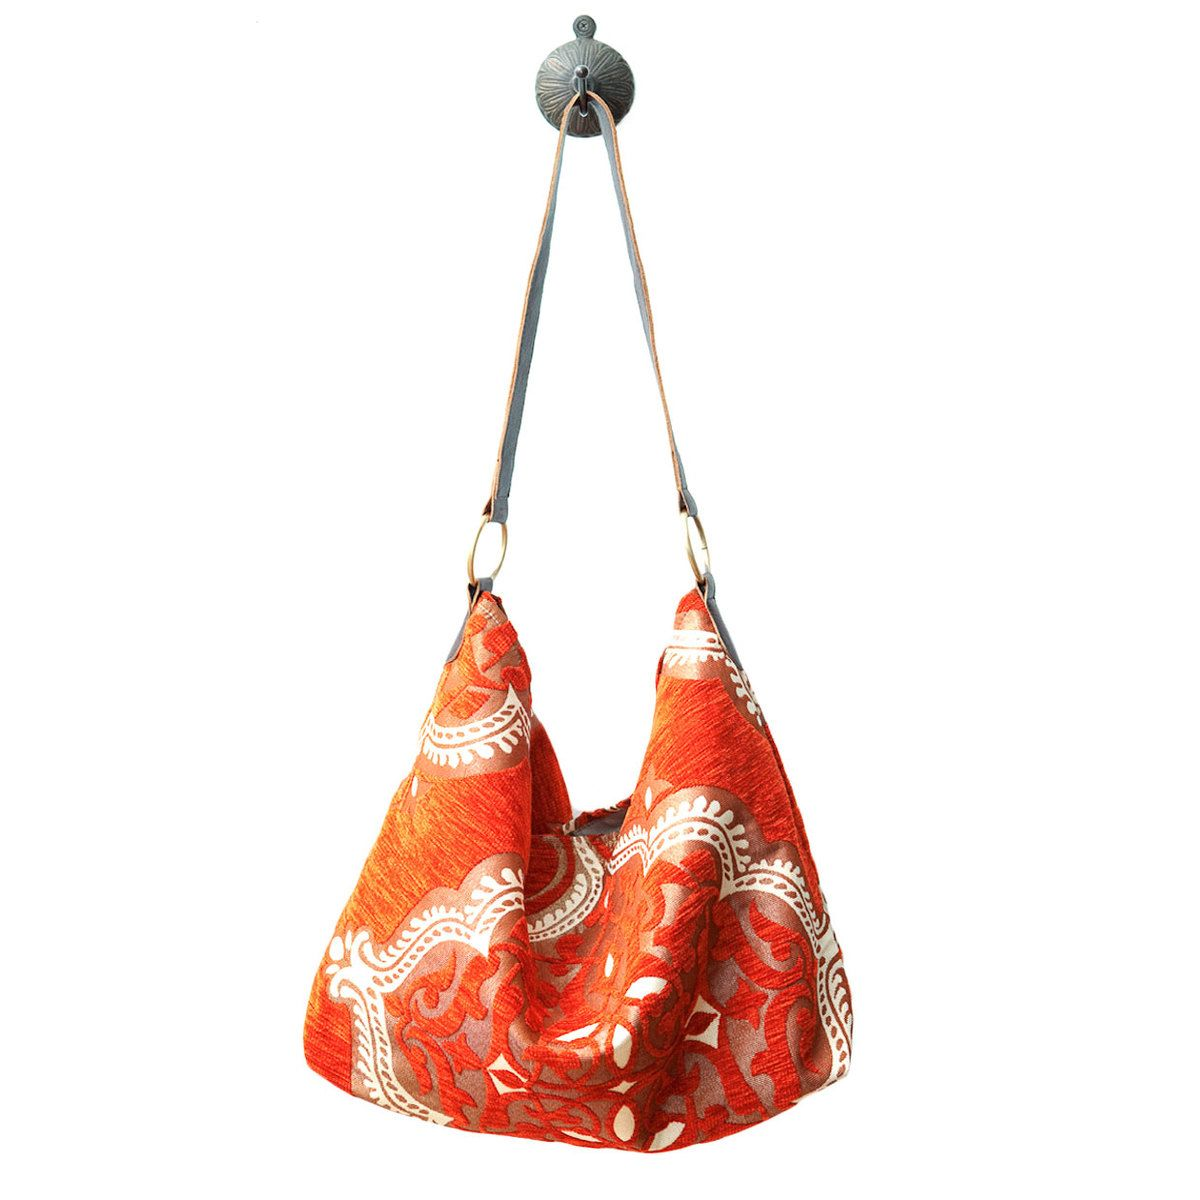 Fab.com | Hobo Bag Orange  This site sells items for Morocco to help women in that country. Check it out.